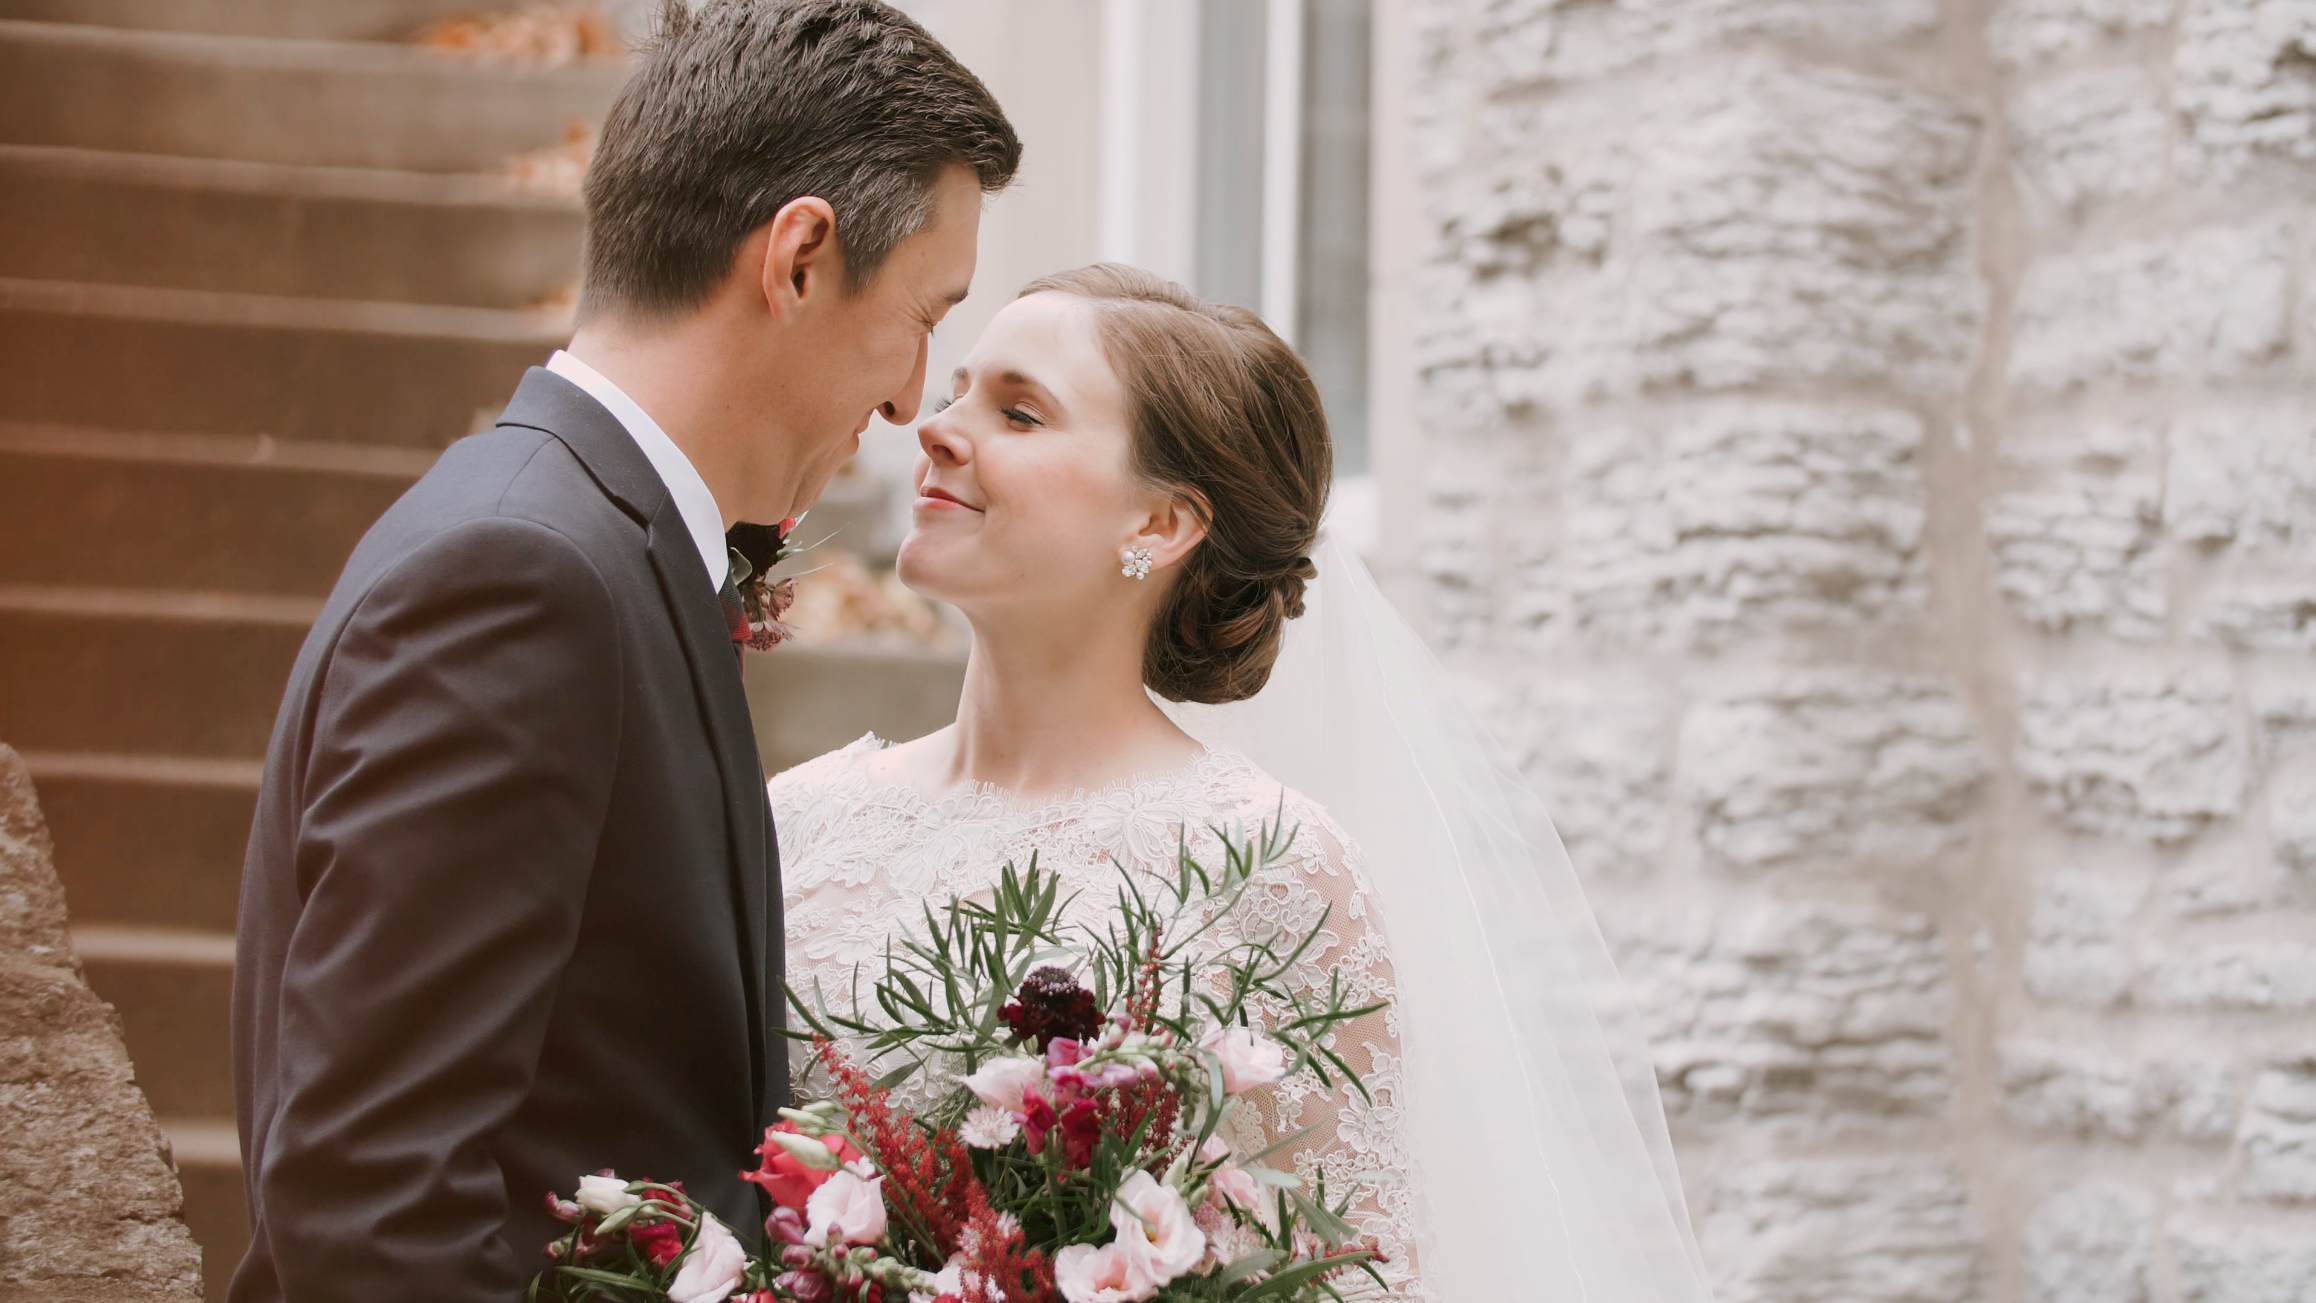 Kevin and Kate looking into each other's eyes in front of beautiful stone wall at the Semple Mansion